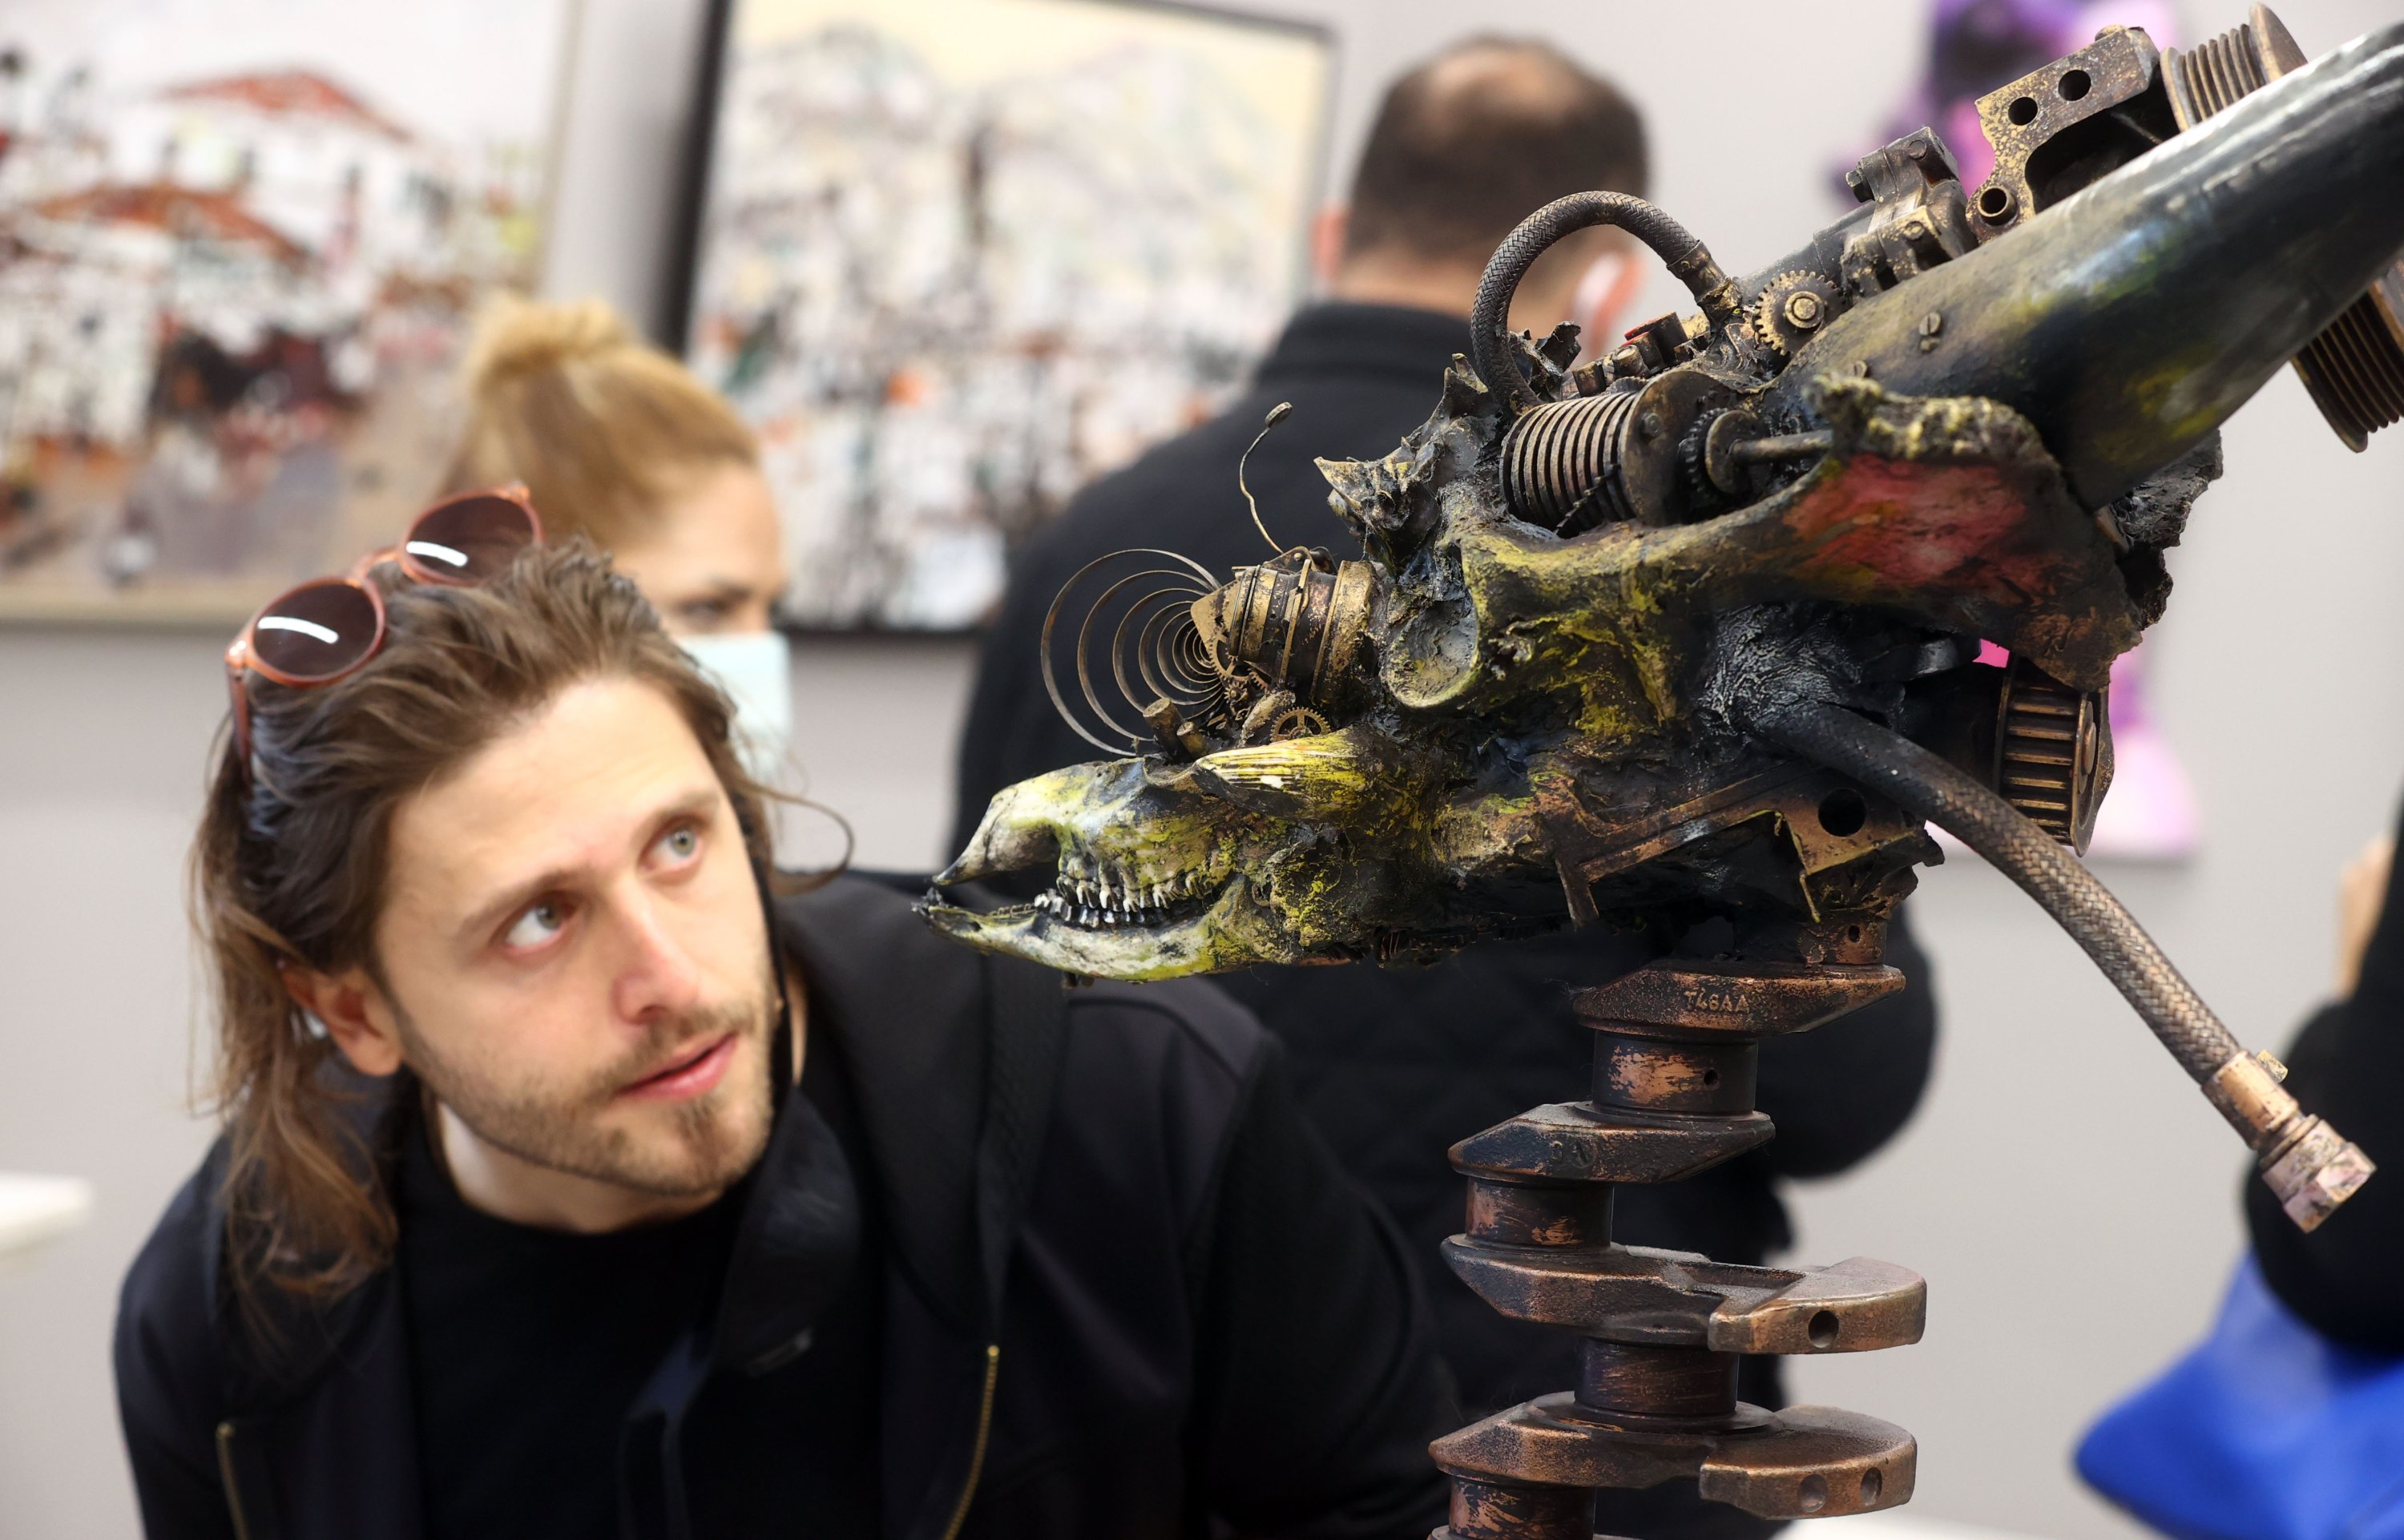 A visitor examines a post-apocalyptic sculpture by Uğur Çalışkan at an exhibition in this photo provided on April 6, 2021. (AA Photo)